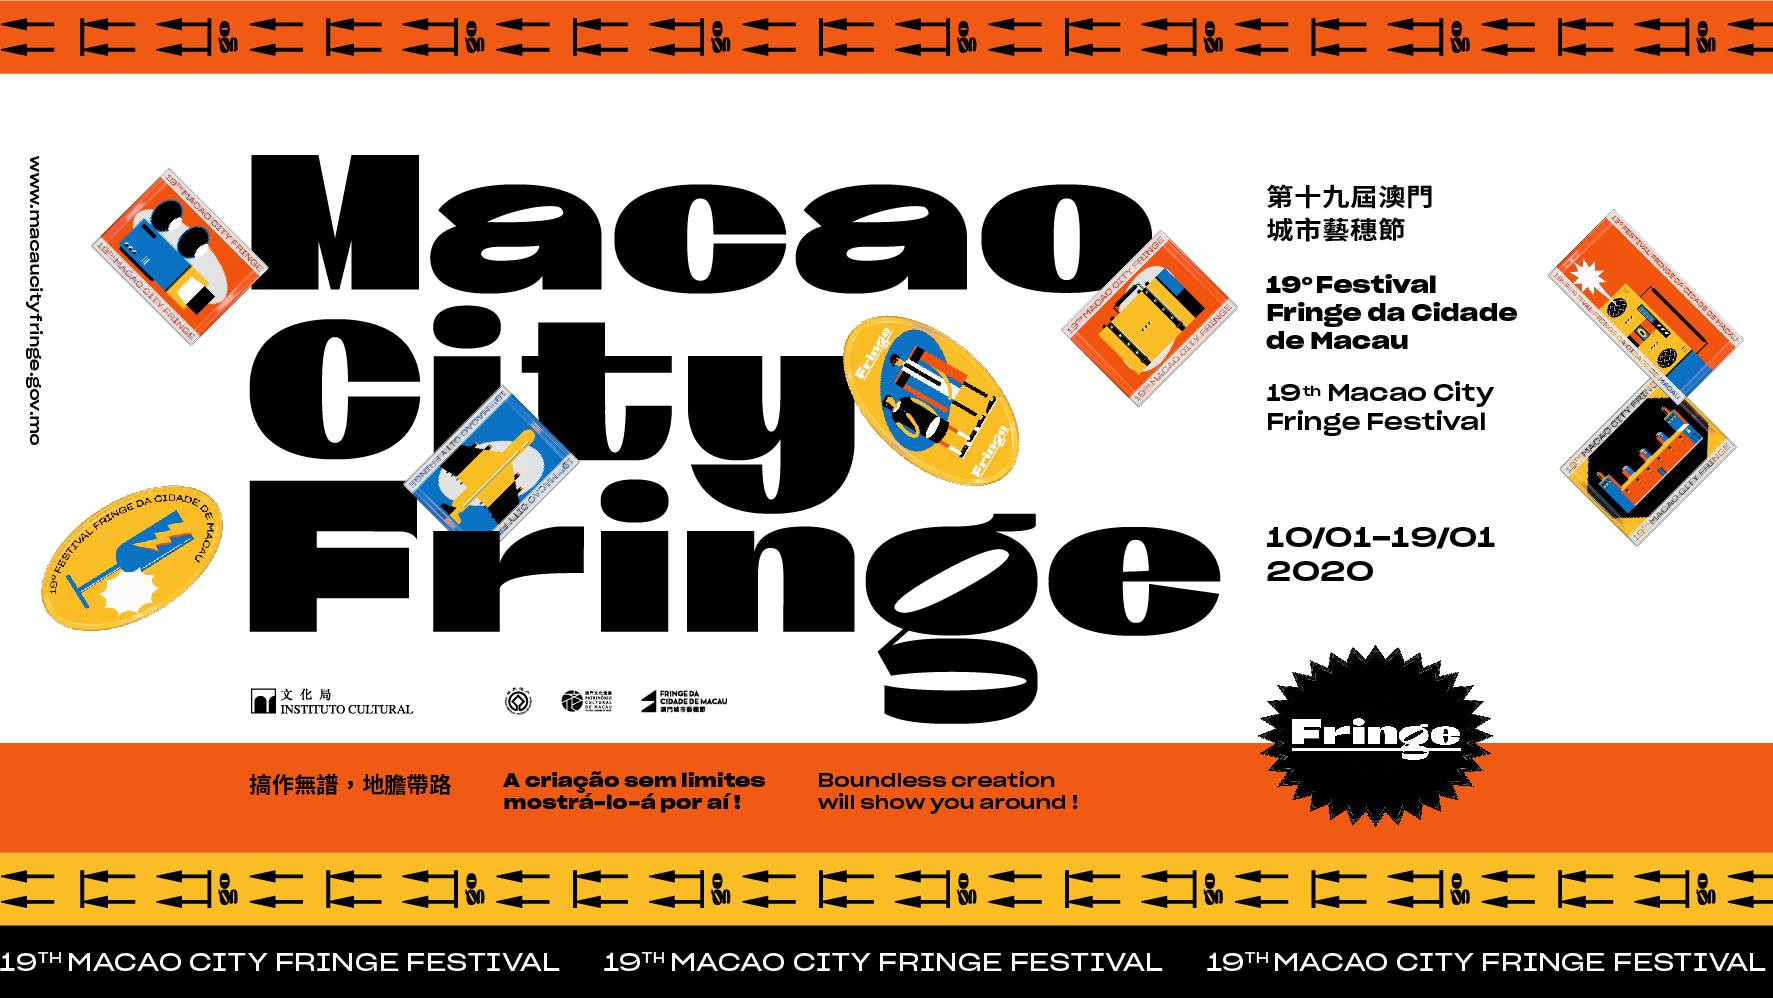 19th Macao City Fringe Festival Banner